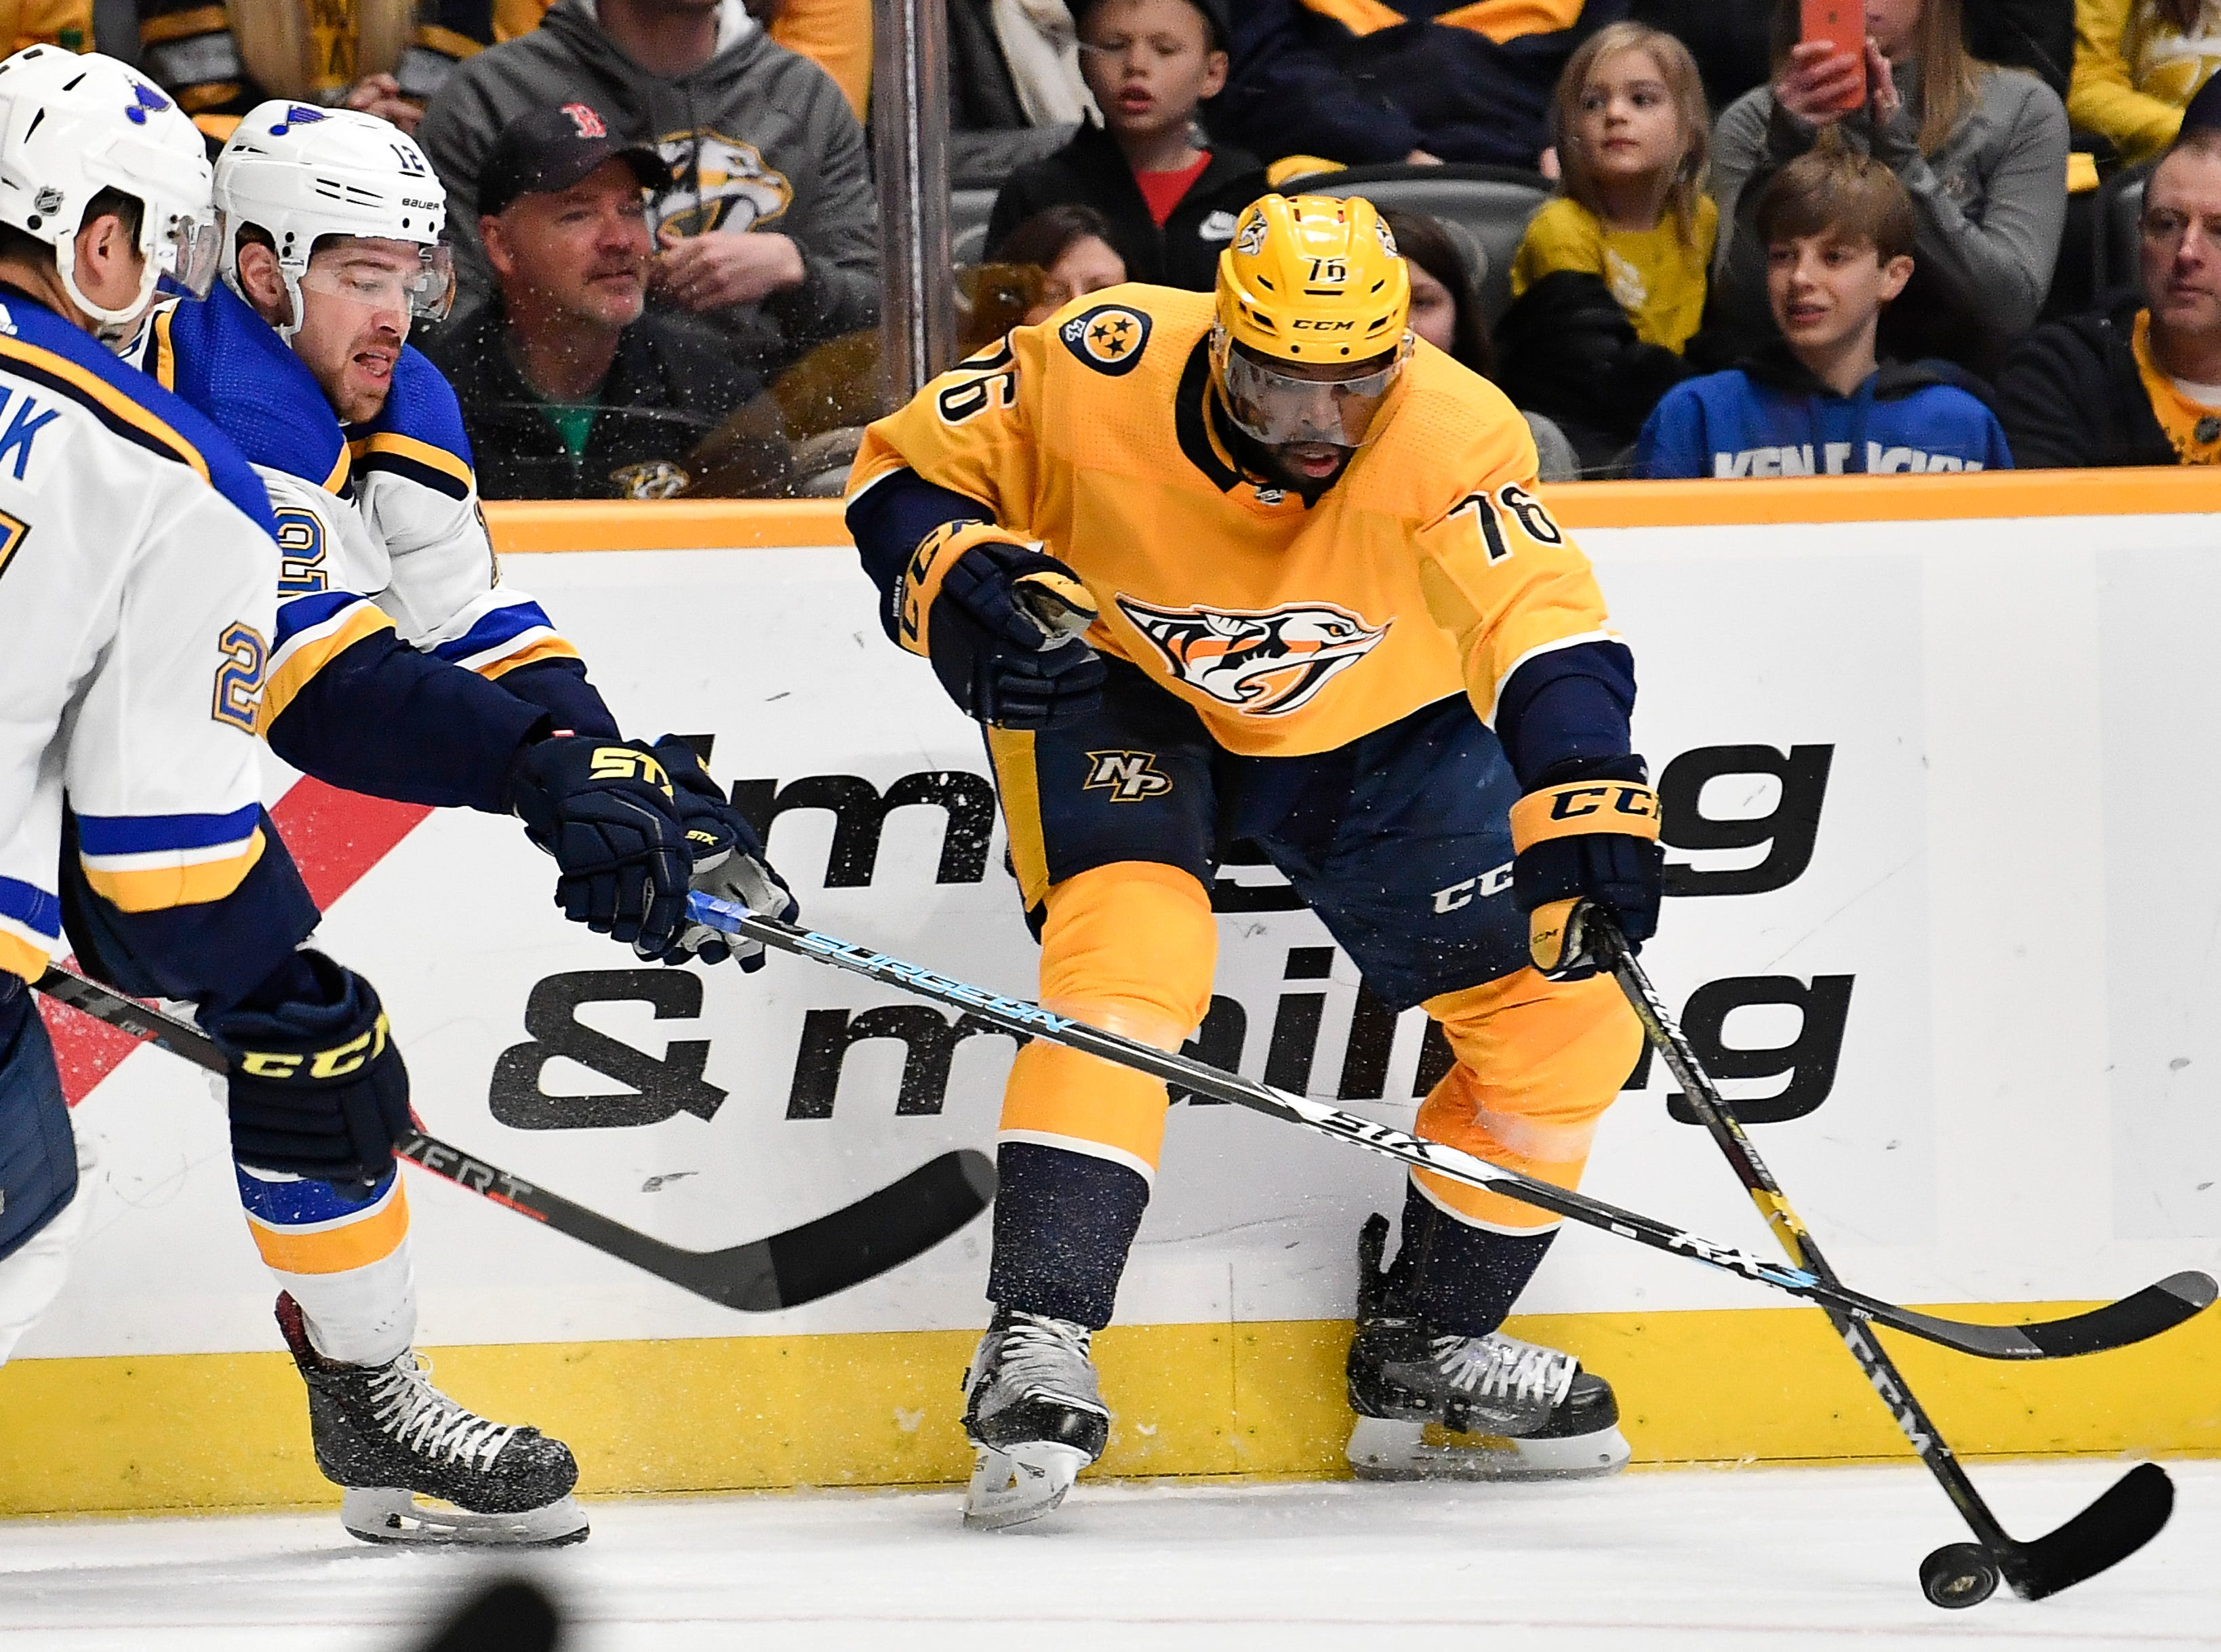 Predators defenseman P.K. Subban (76) reaches for the puck past Blues center Tyler Bozak (21) and left wing Zach Sanford (12) during the first period at Bridgestone Arena Sunday Feb. 10, 2019 in Nashville, Tenn.